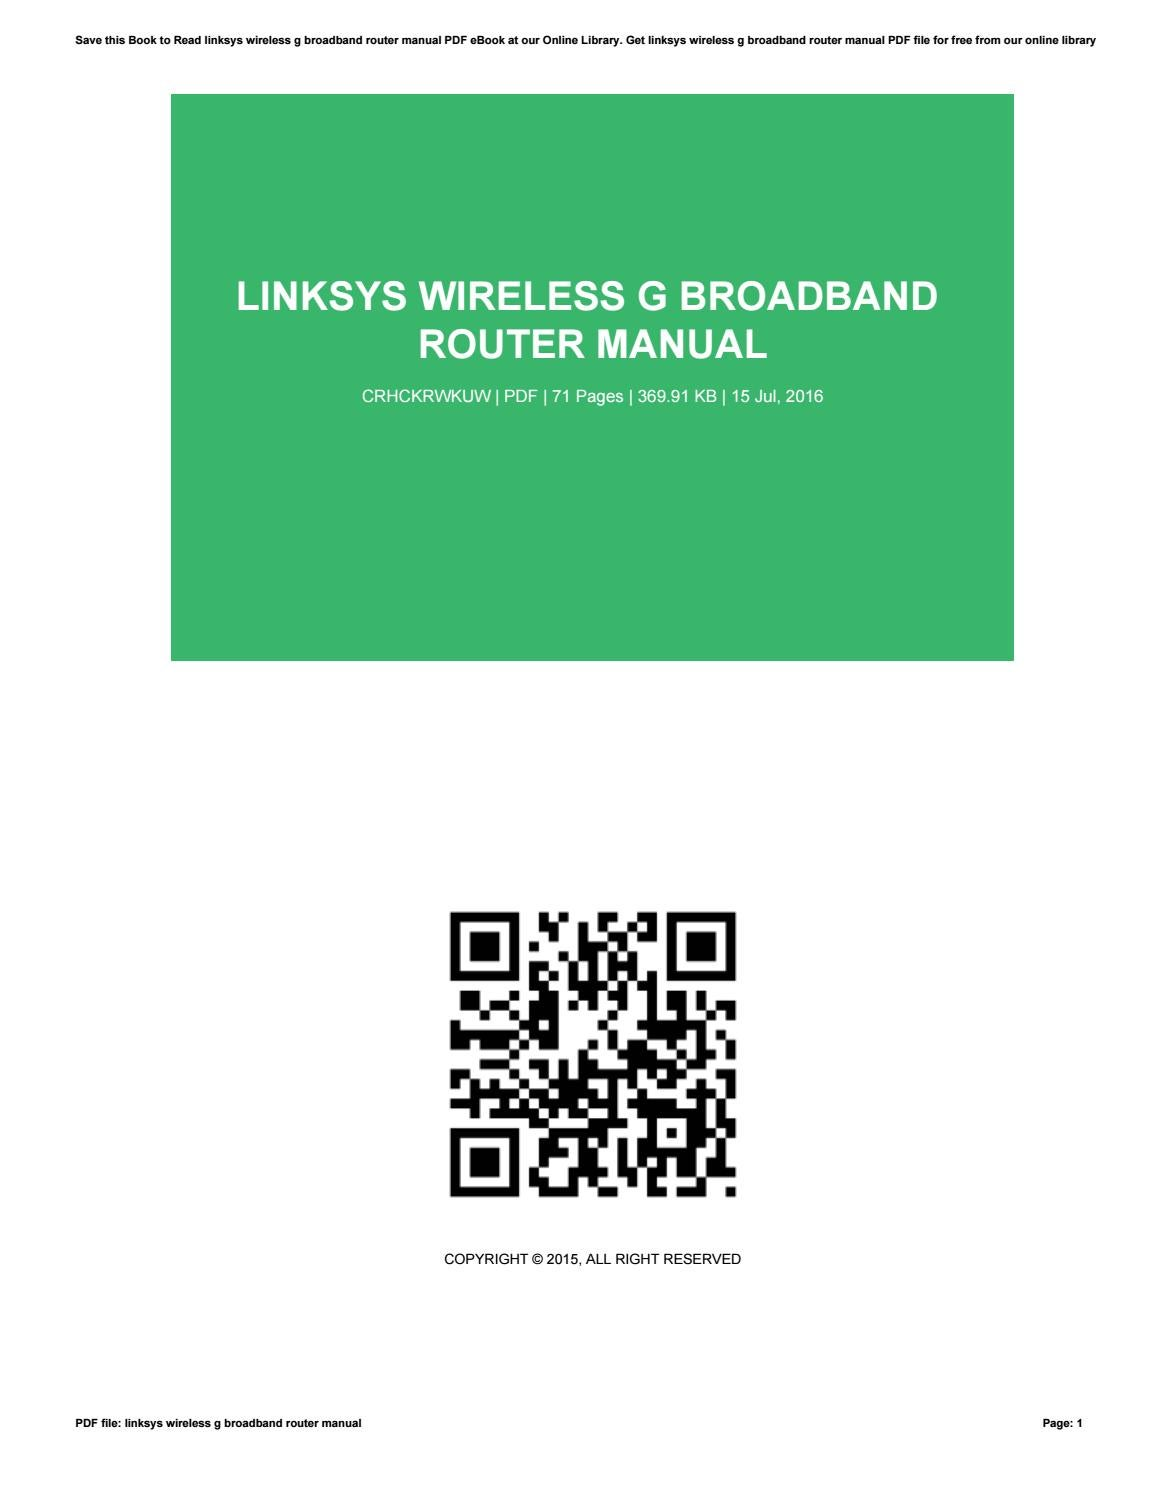 Linksys wireless g broadband router manual by BonnieVictoria1534 - issuu